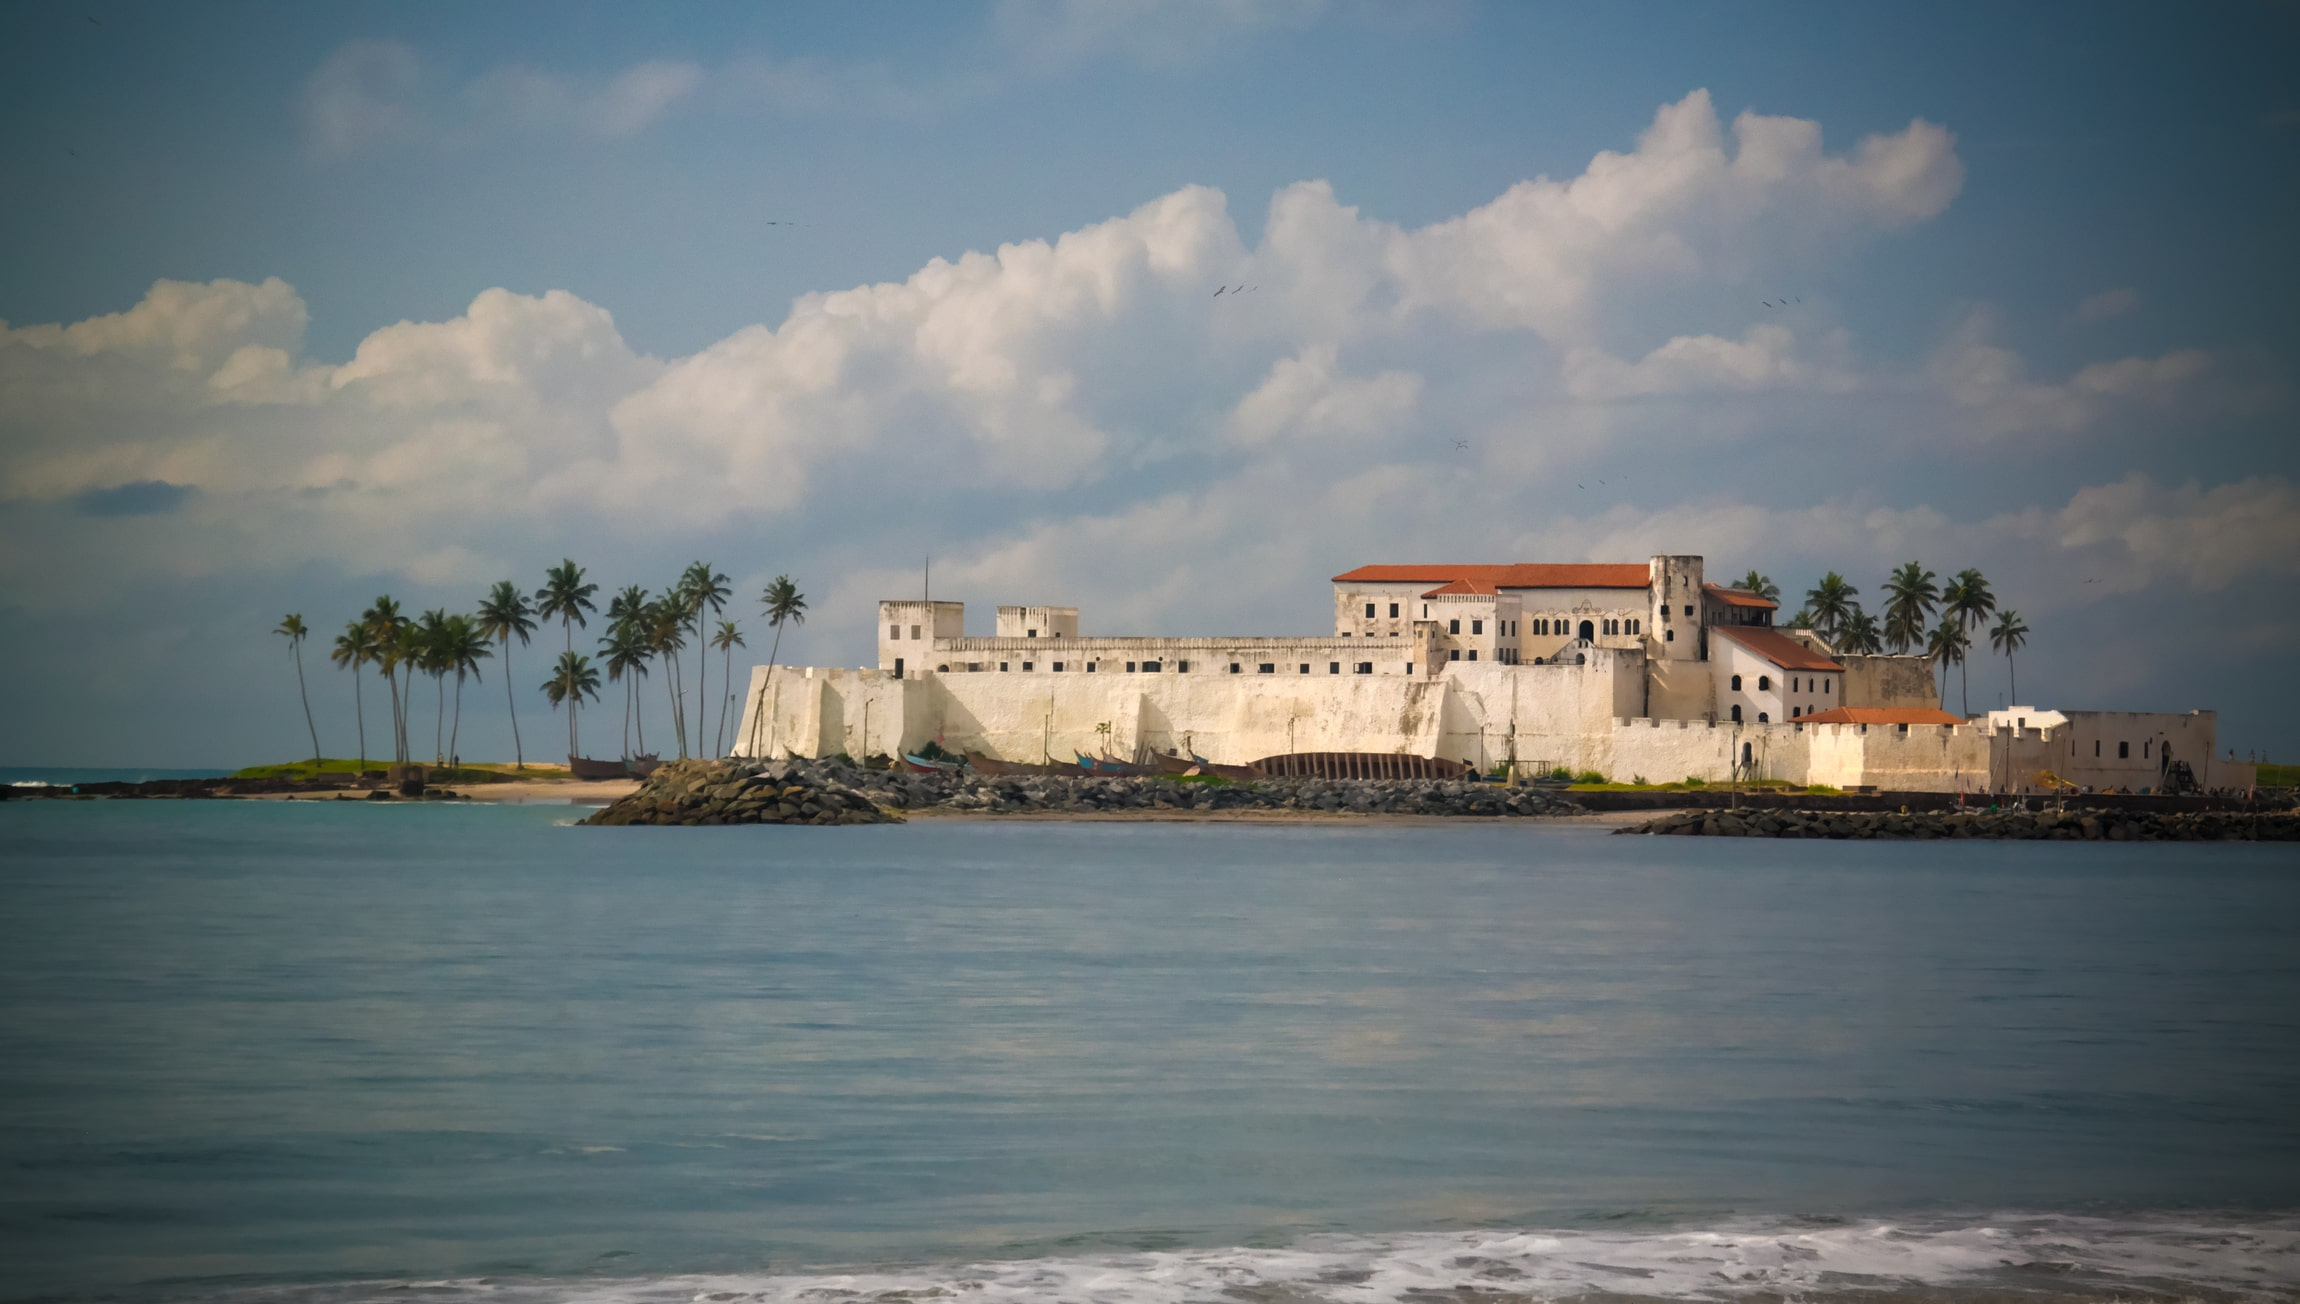 exterior-view-to-elmina-castle-and-fortress-ghana-120282577-min.jpg